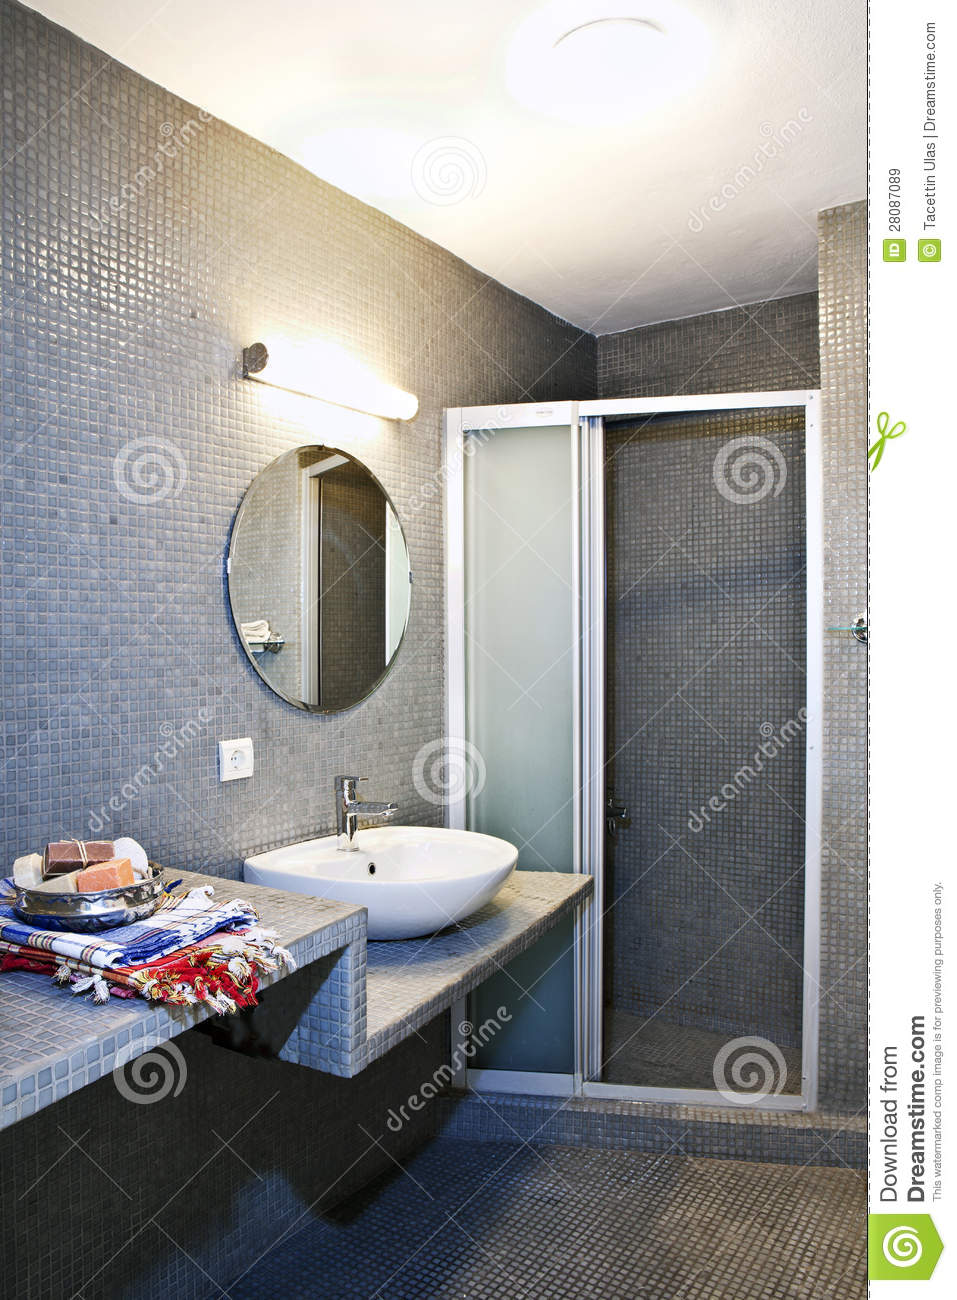 Bathroom Royalty Free Stock Images Image 28087089